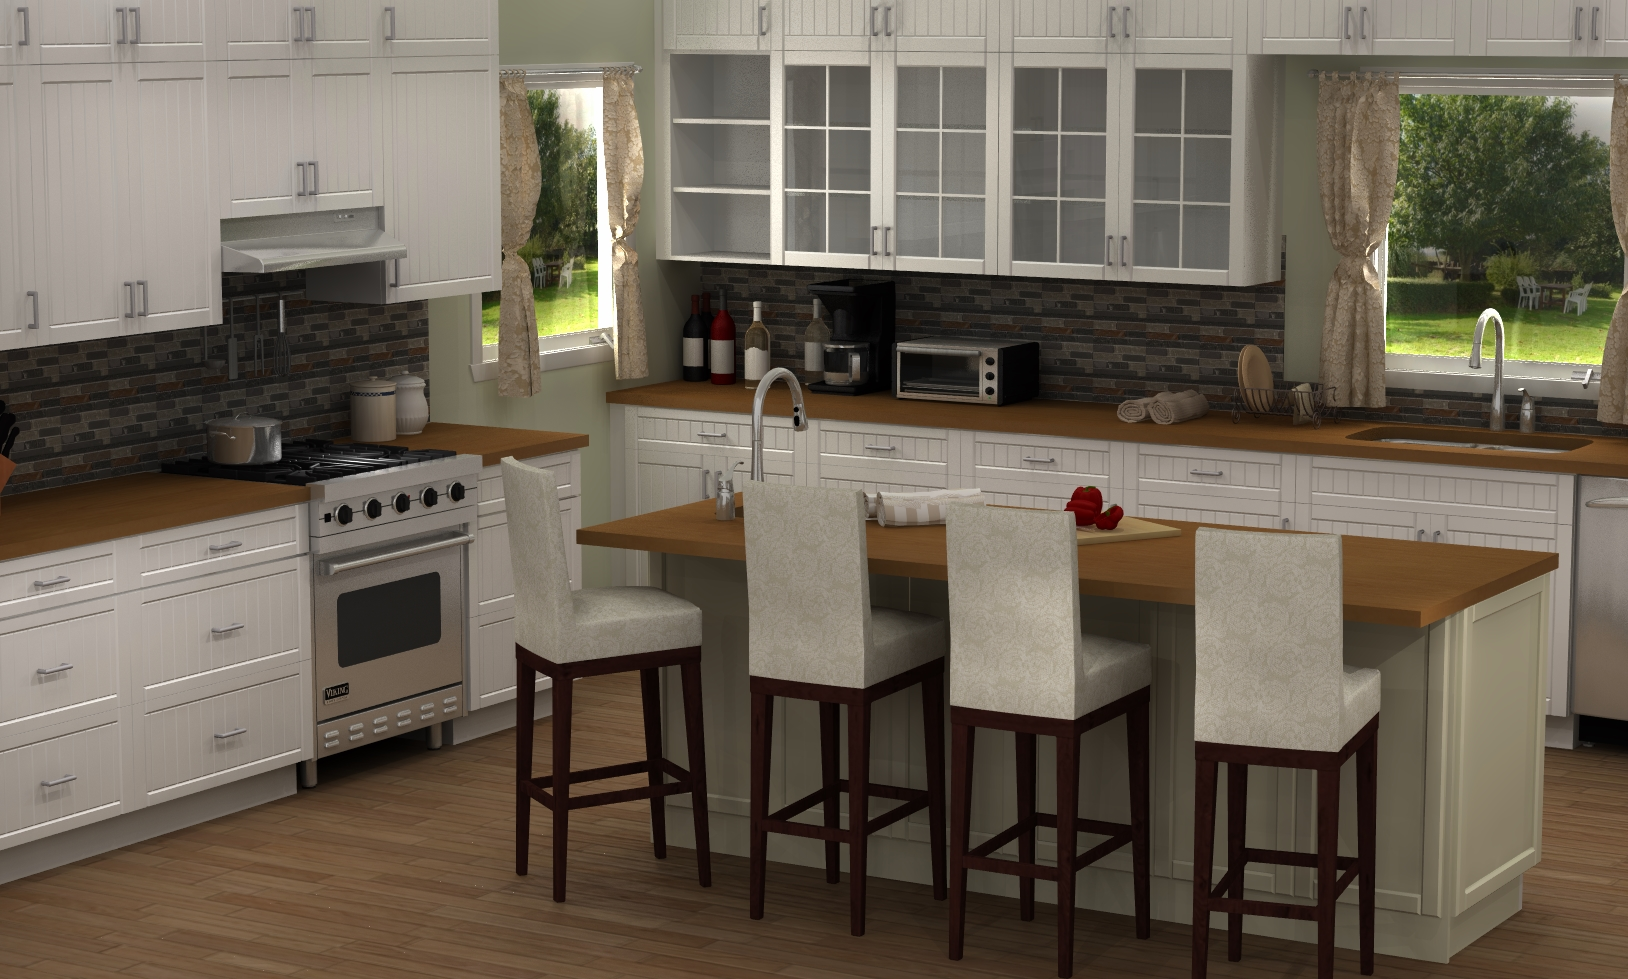 Our first famous kitchen design using ikeas sektion